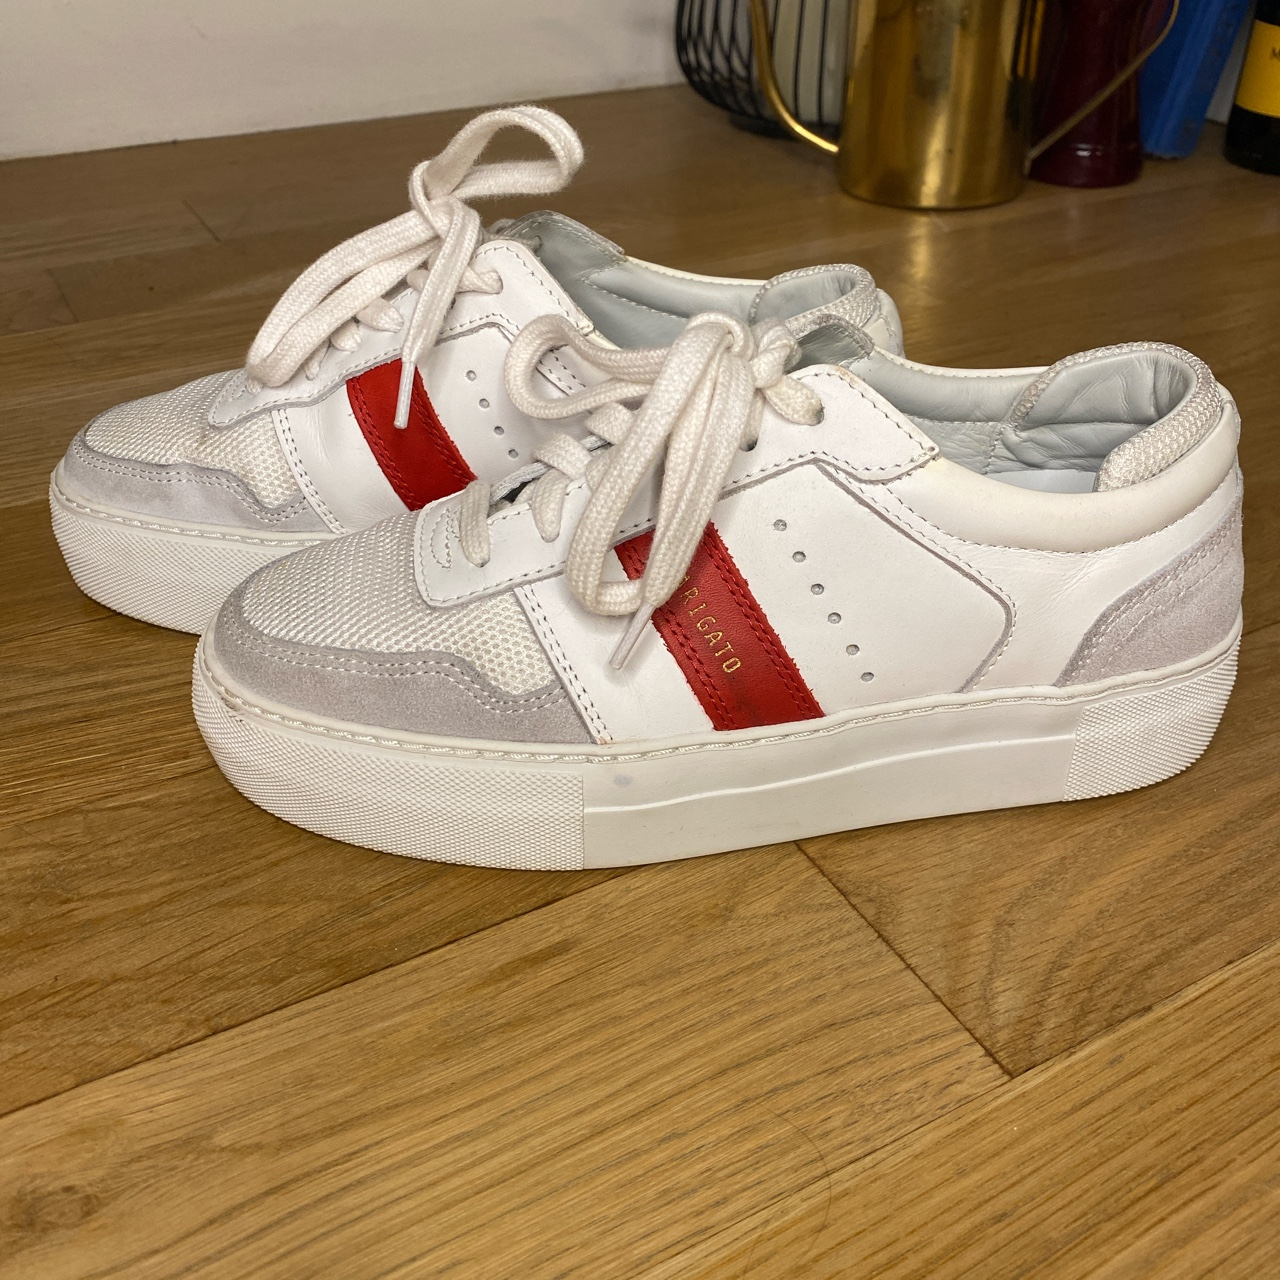 Product Image 1 - Axel Arigato Sneakers  *some wear shown